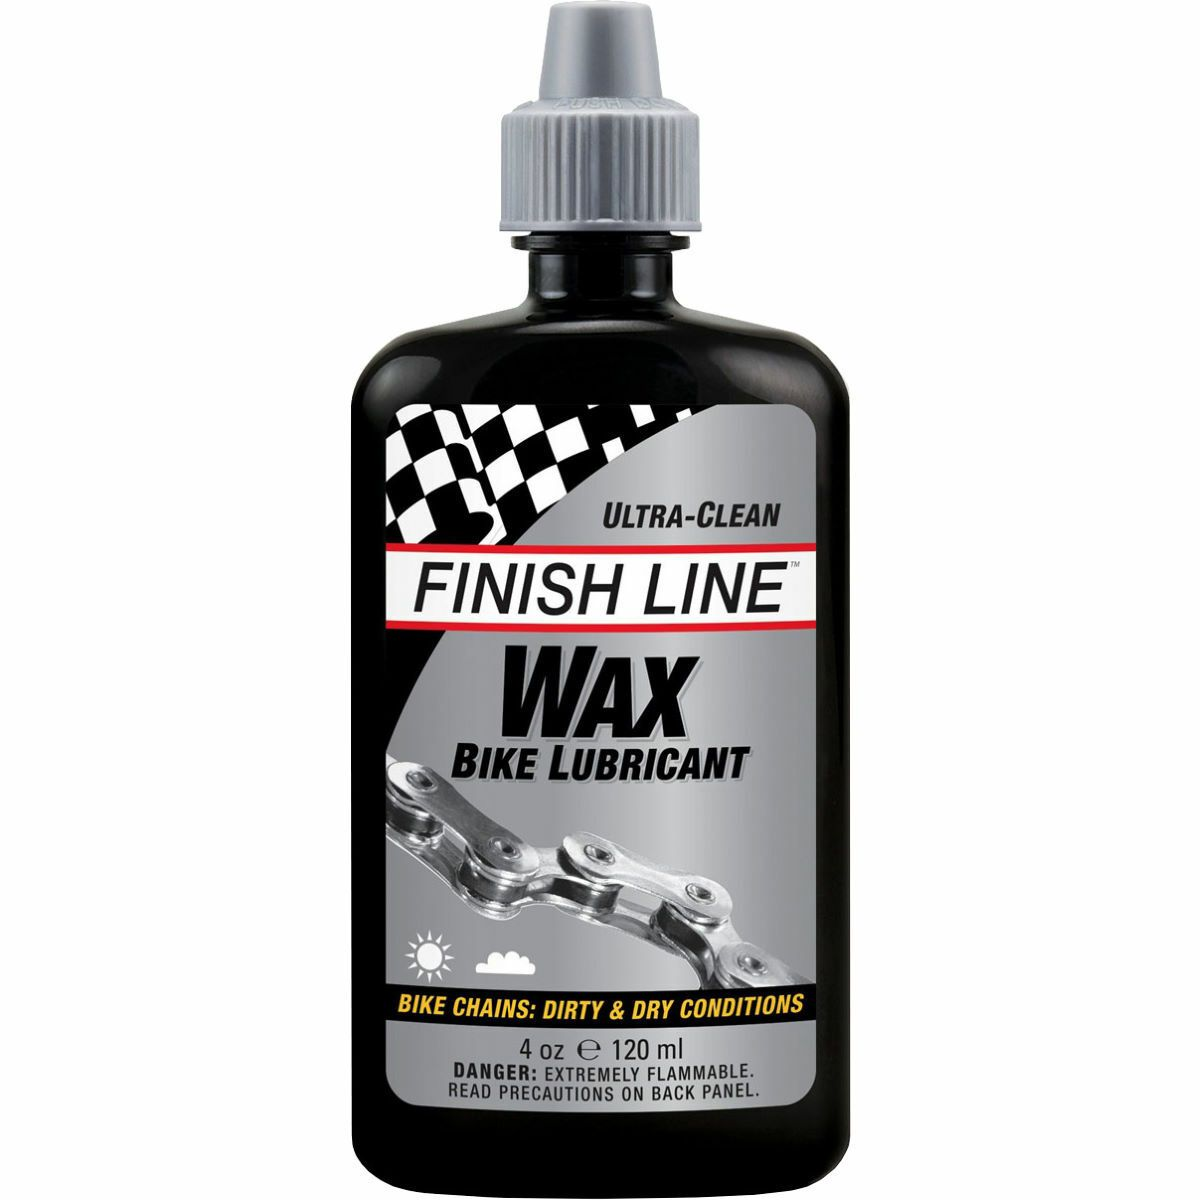 Finish Line Krytech Wax Lube 120ml Bottle The Cleanest Driest